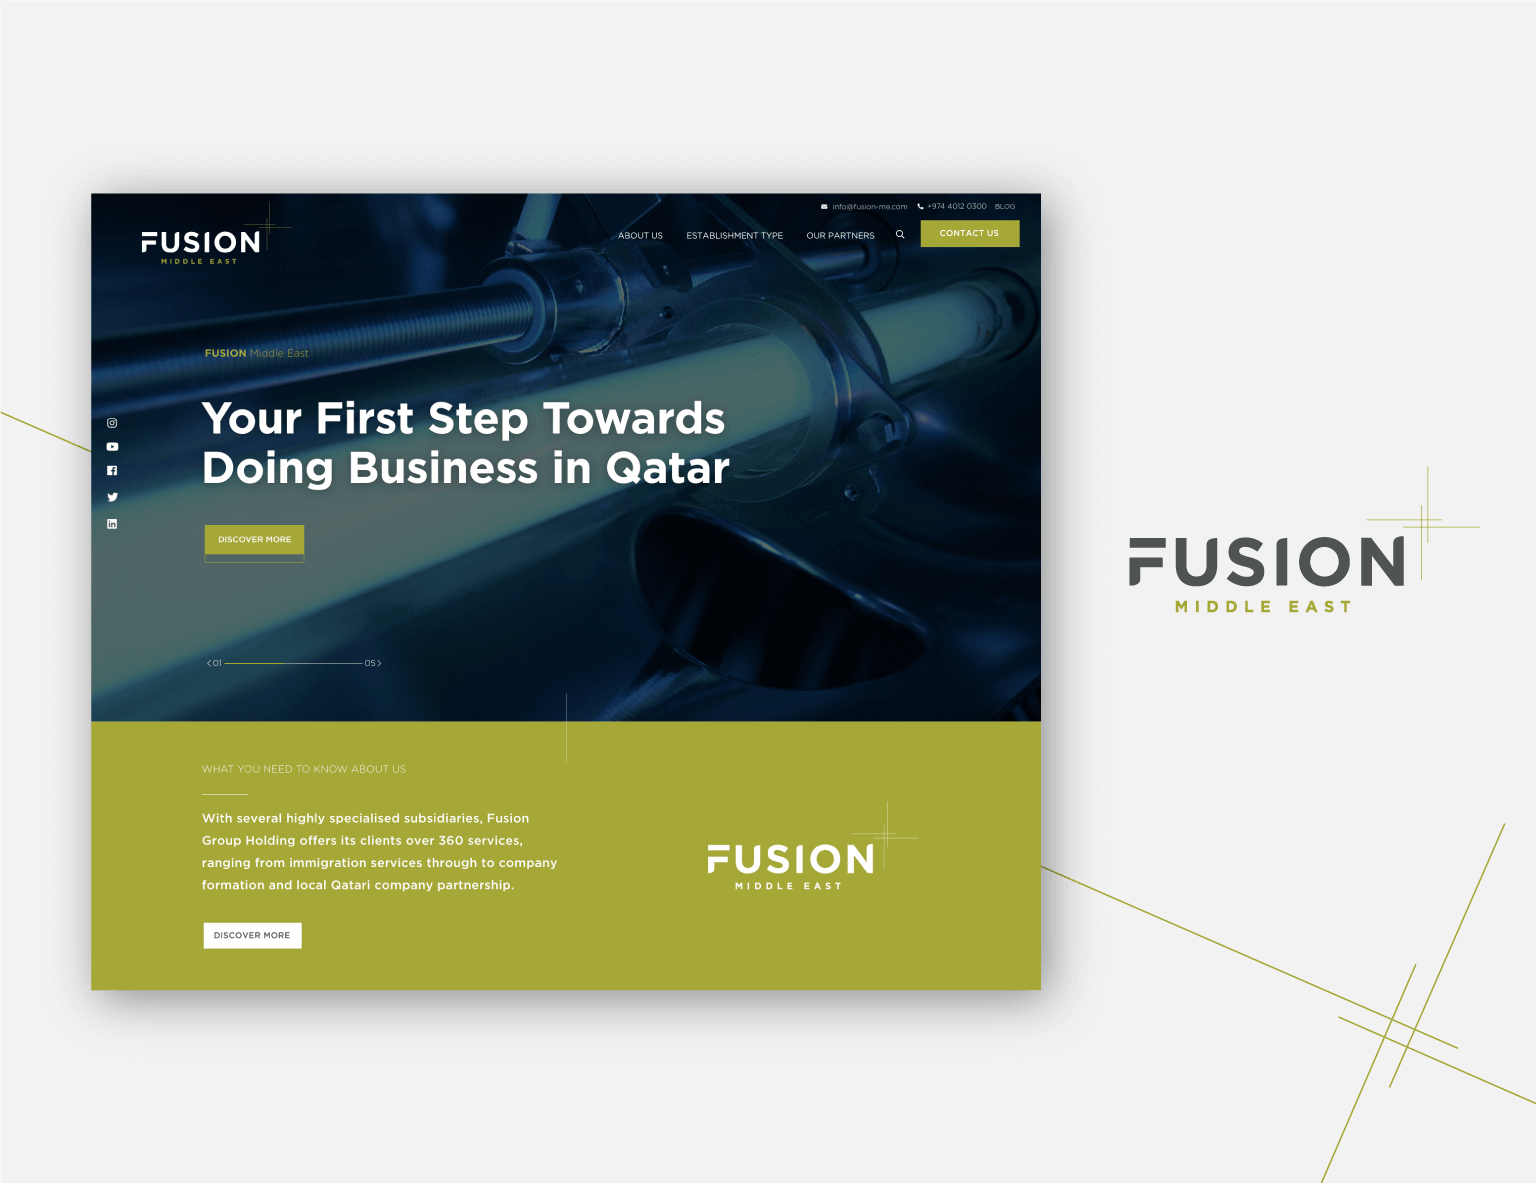 Fusion Group Holdings